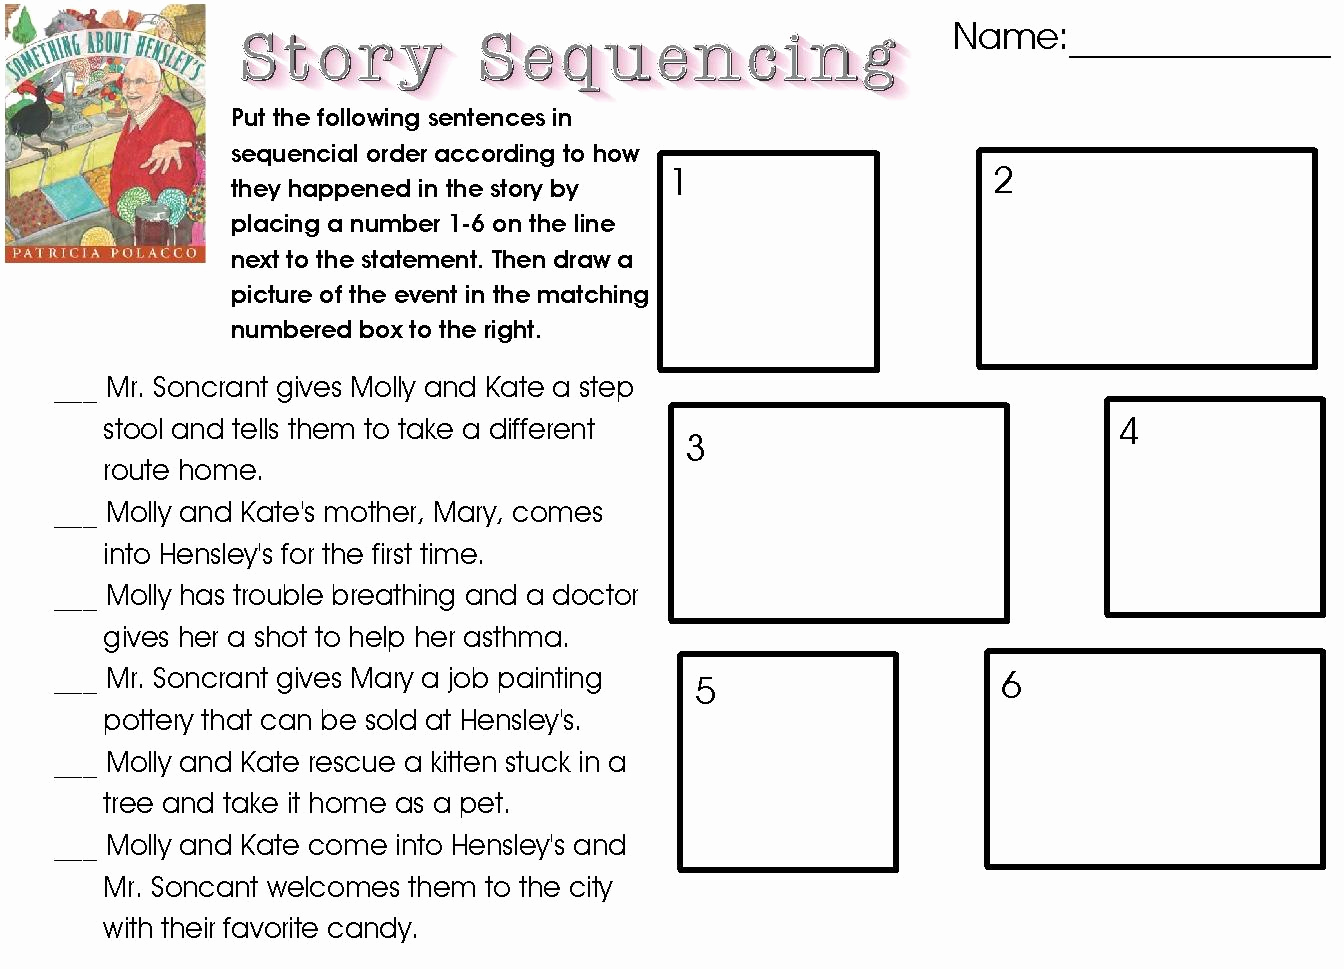 Sequencing Worksheets 4th Grade Awesome 4th Grade Story Sequencing Worksheet